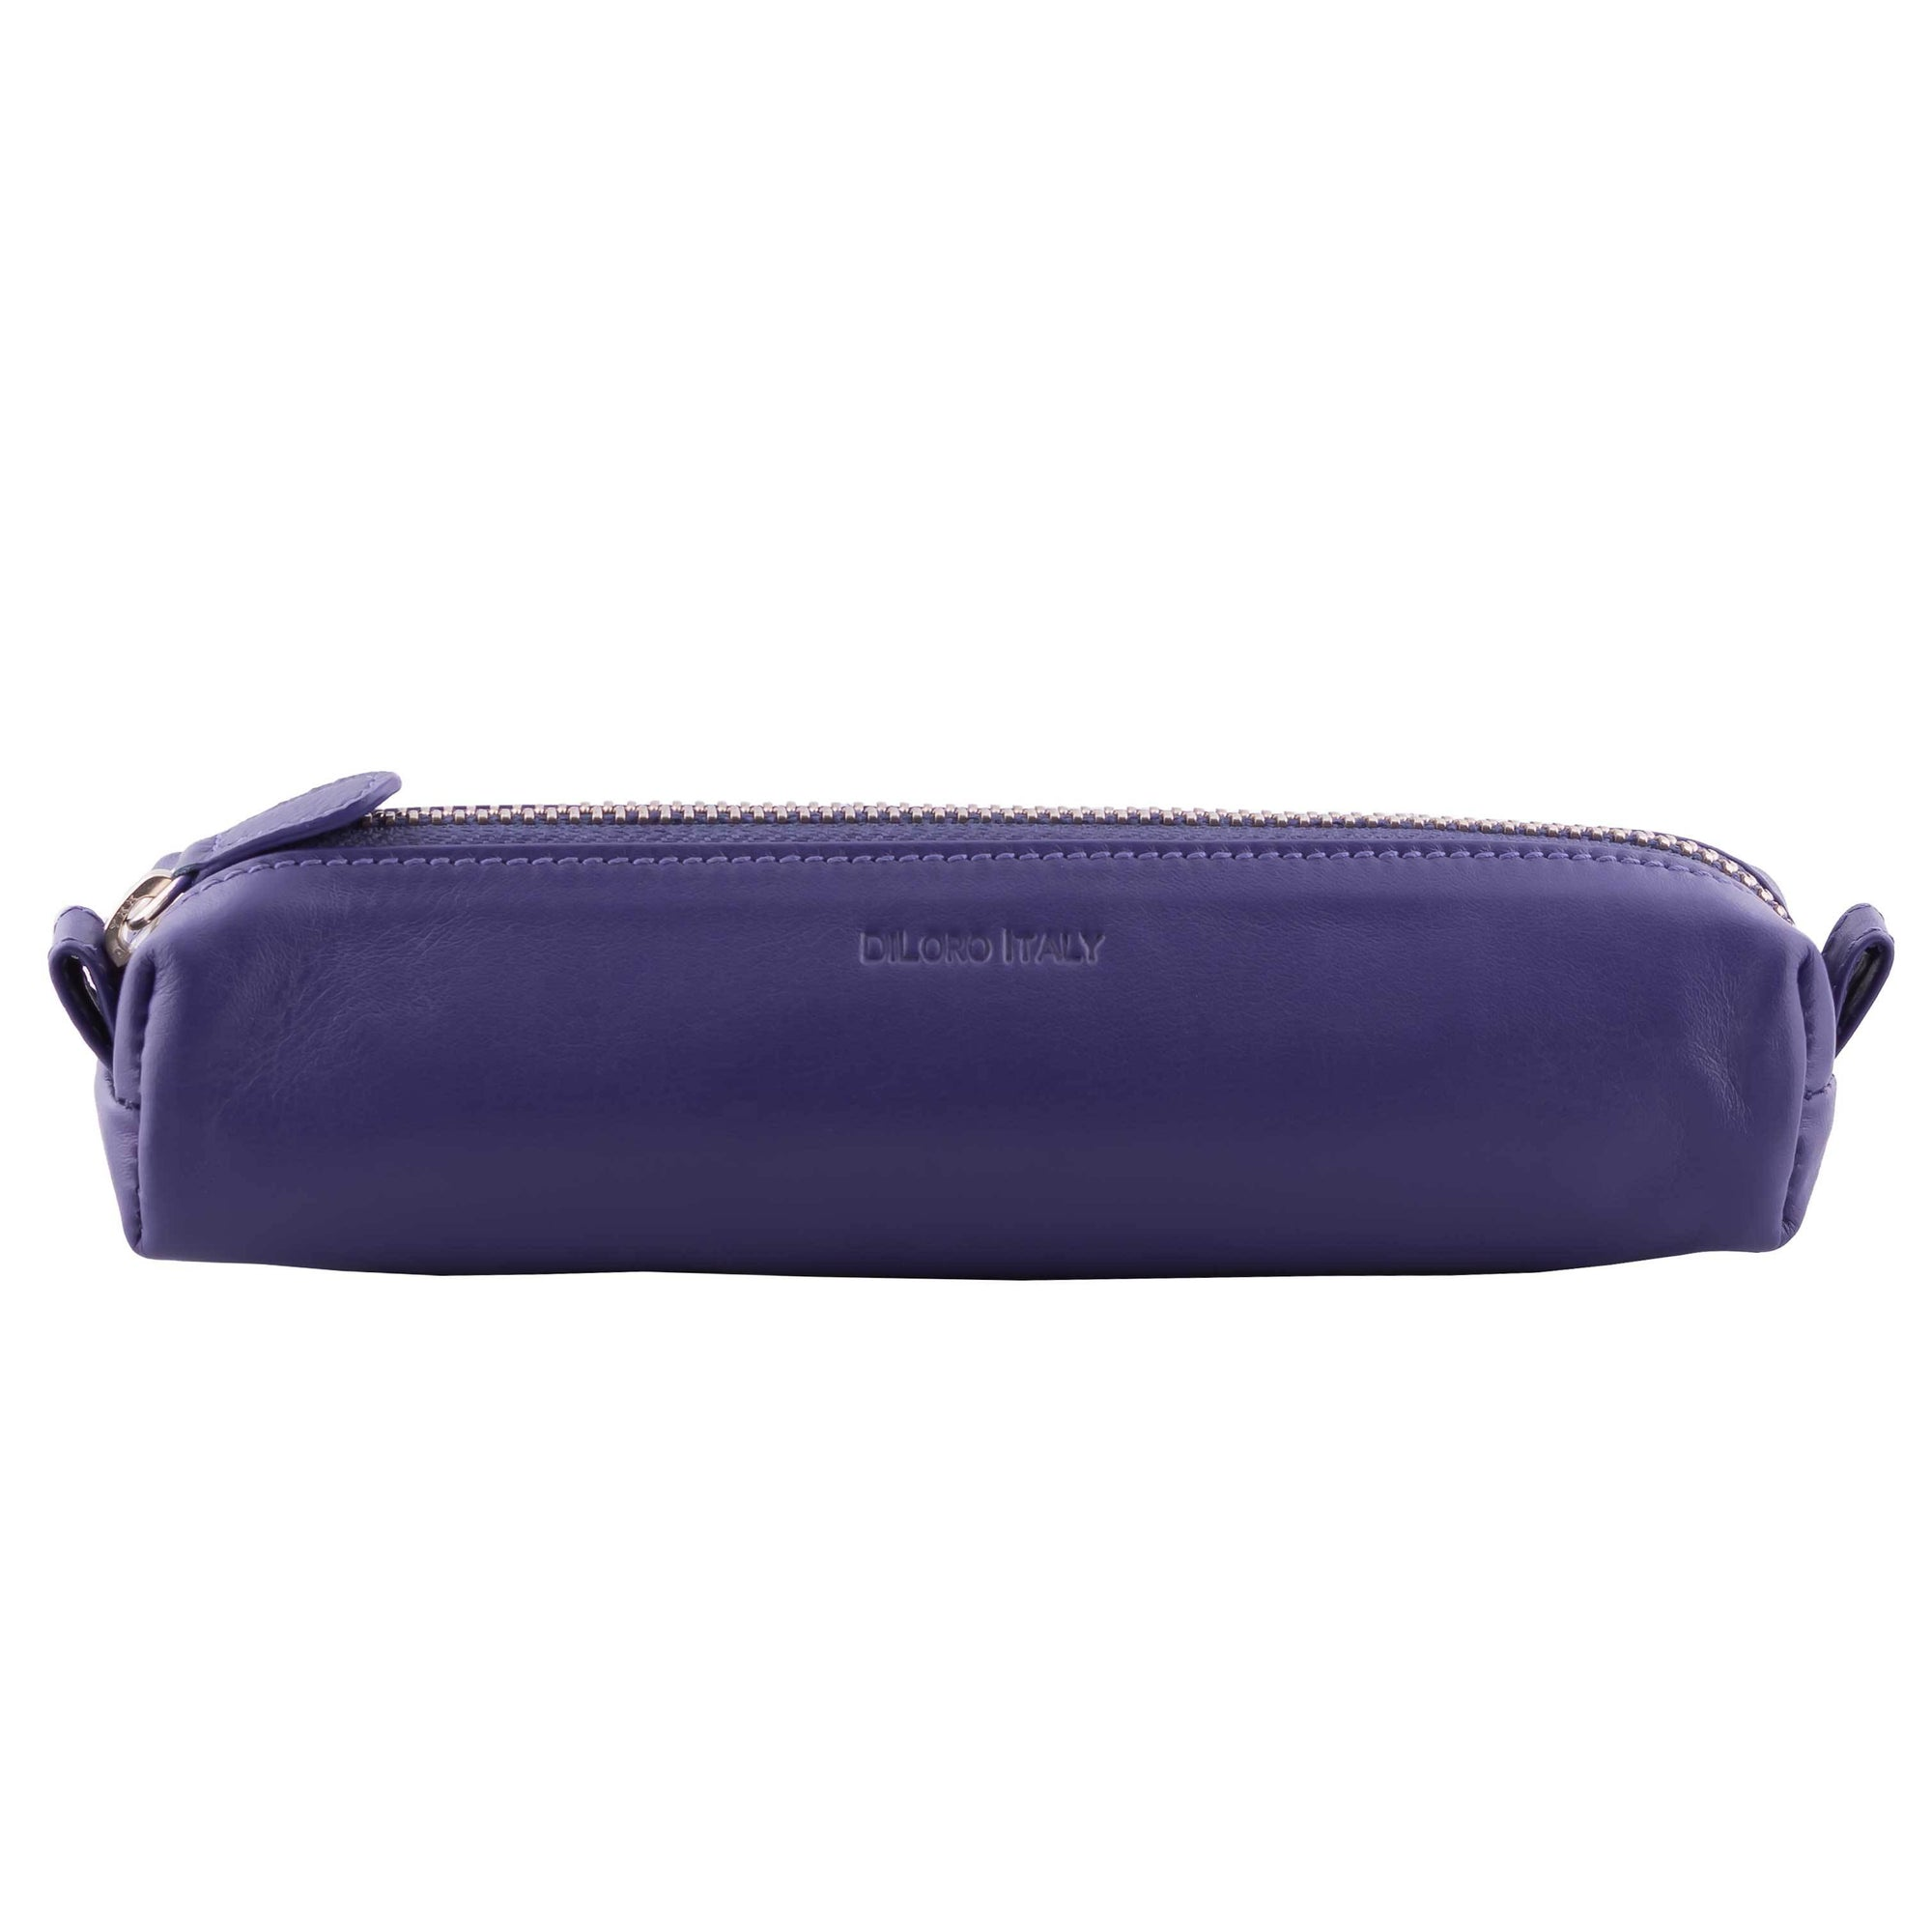 Multi-Purpose Zippered Leather Pen Pencil Case in Various Colors - Violet